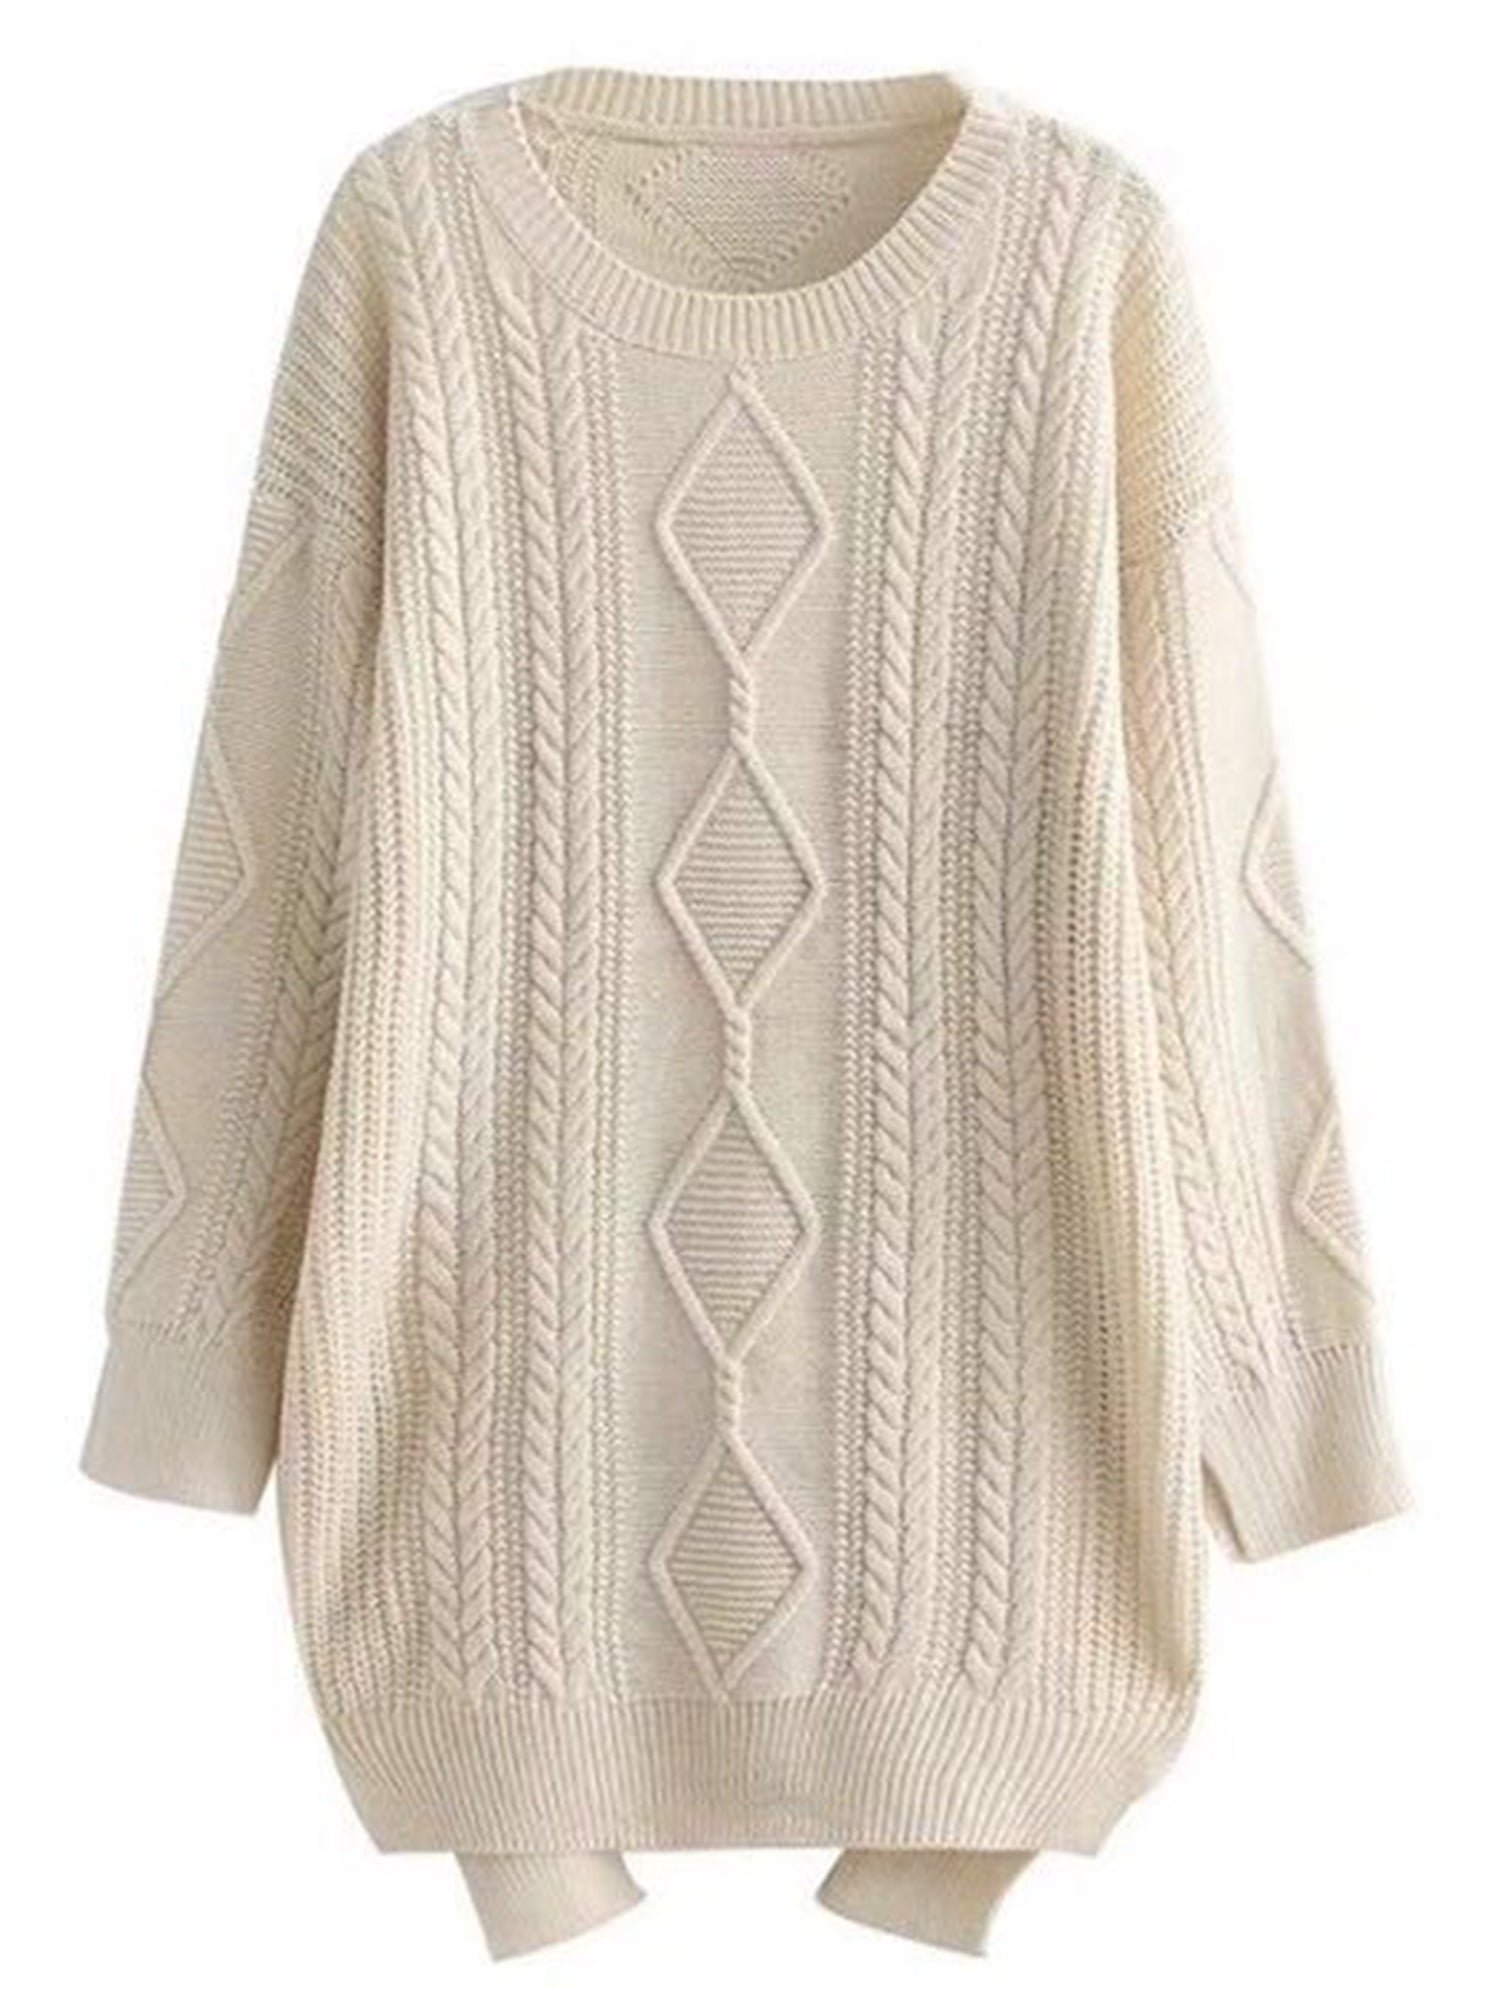 'Rowena' Knitted Longline Sweater (3 Colors)